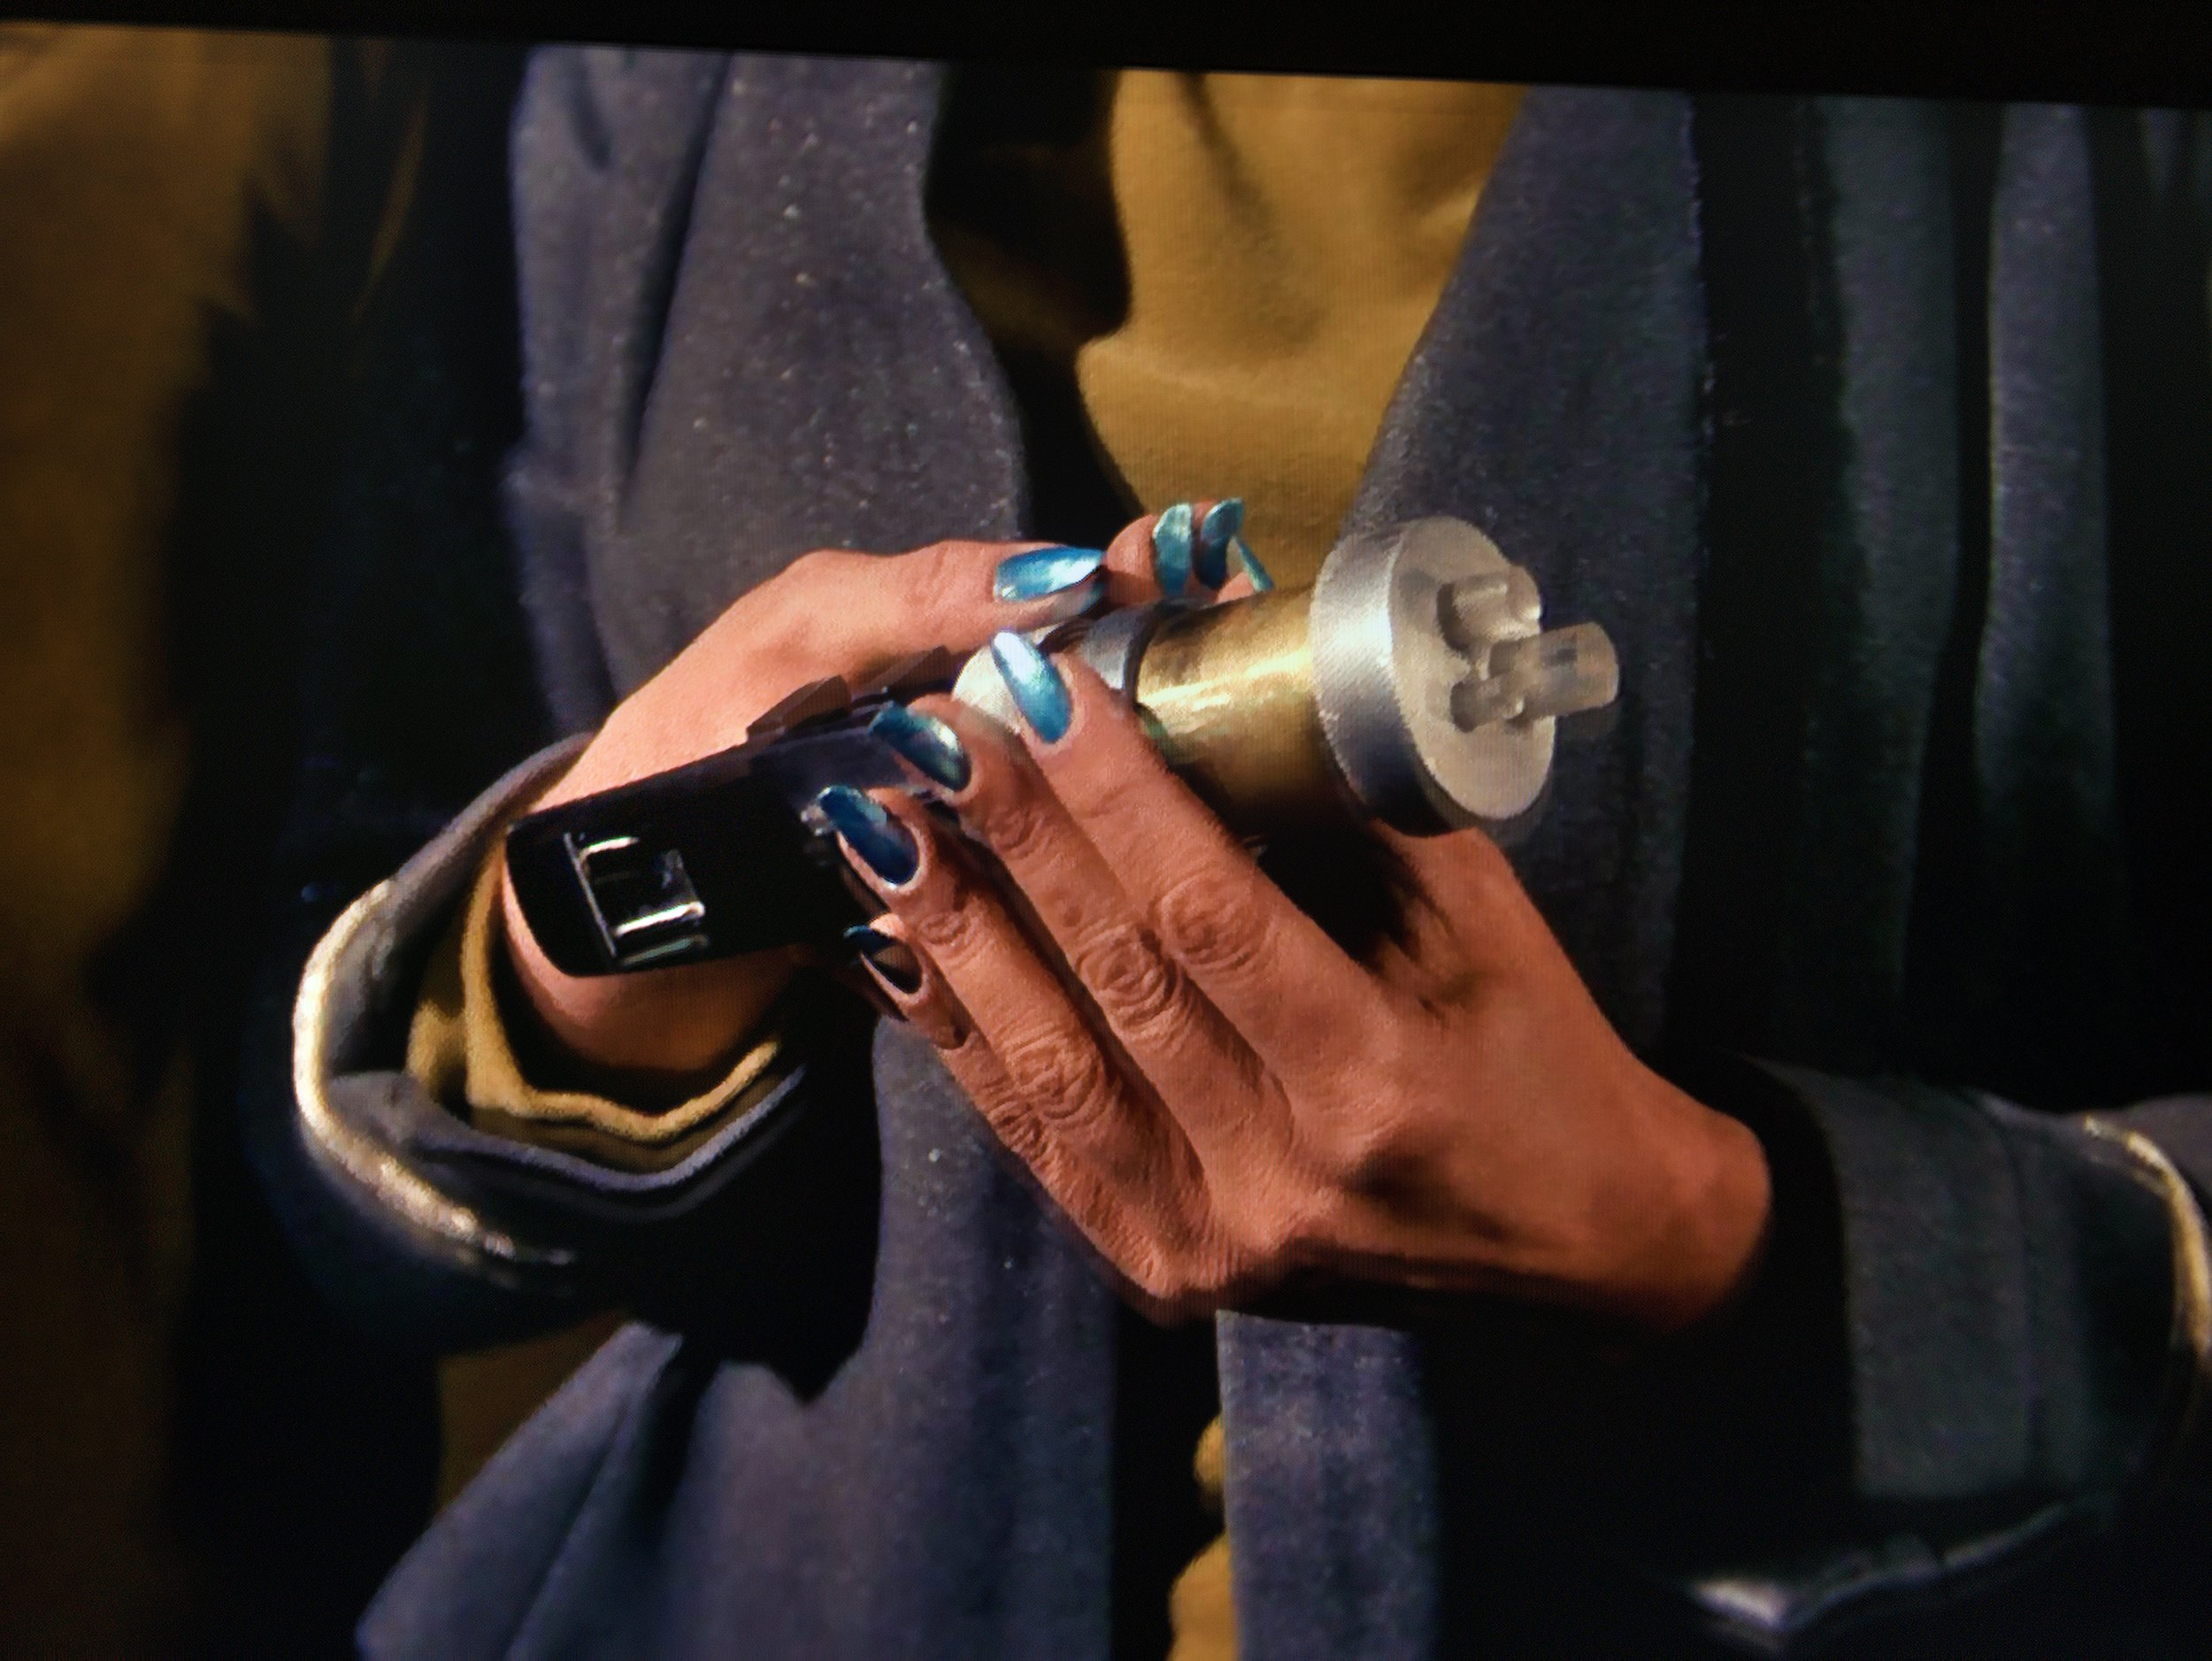 Number One cranks the phaser to ELEVEN. Also, please note her dazzling blue manicure—space aesthetic!